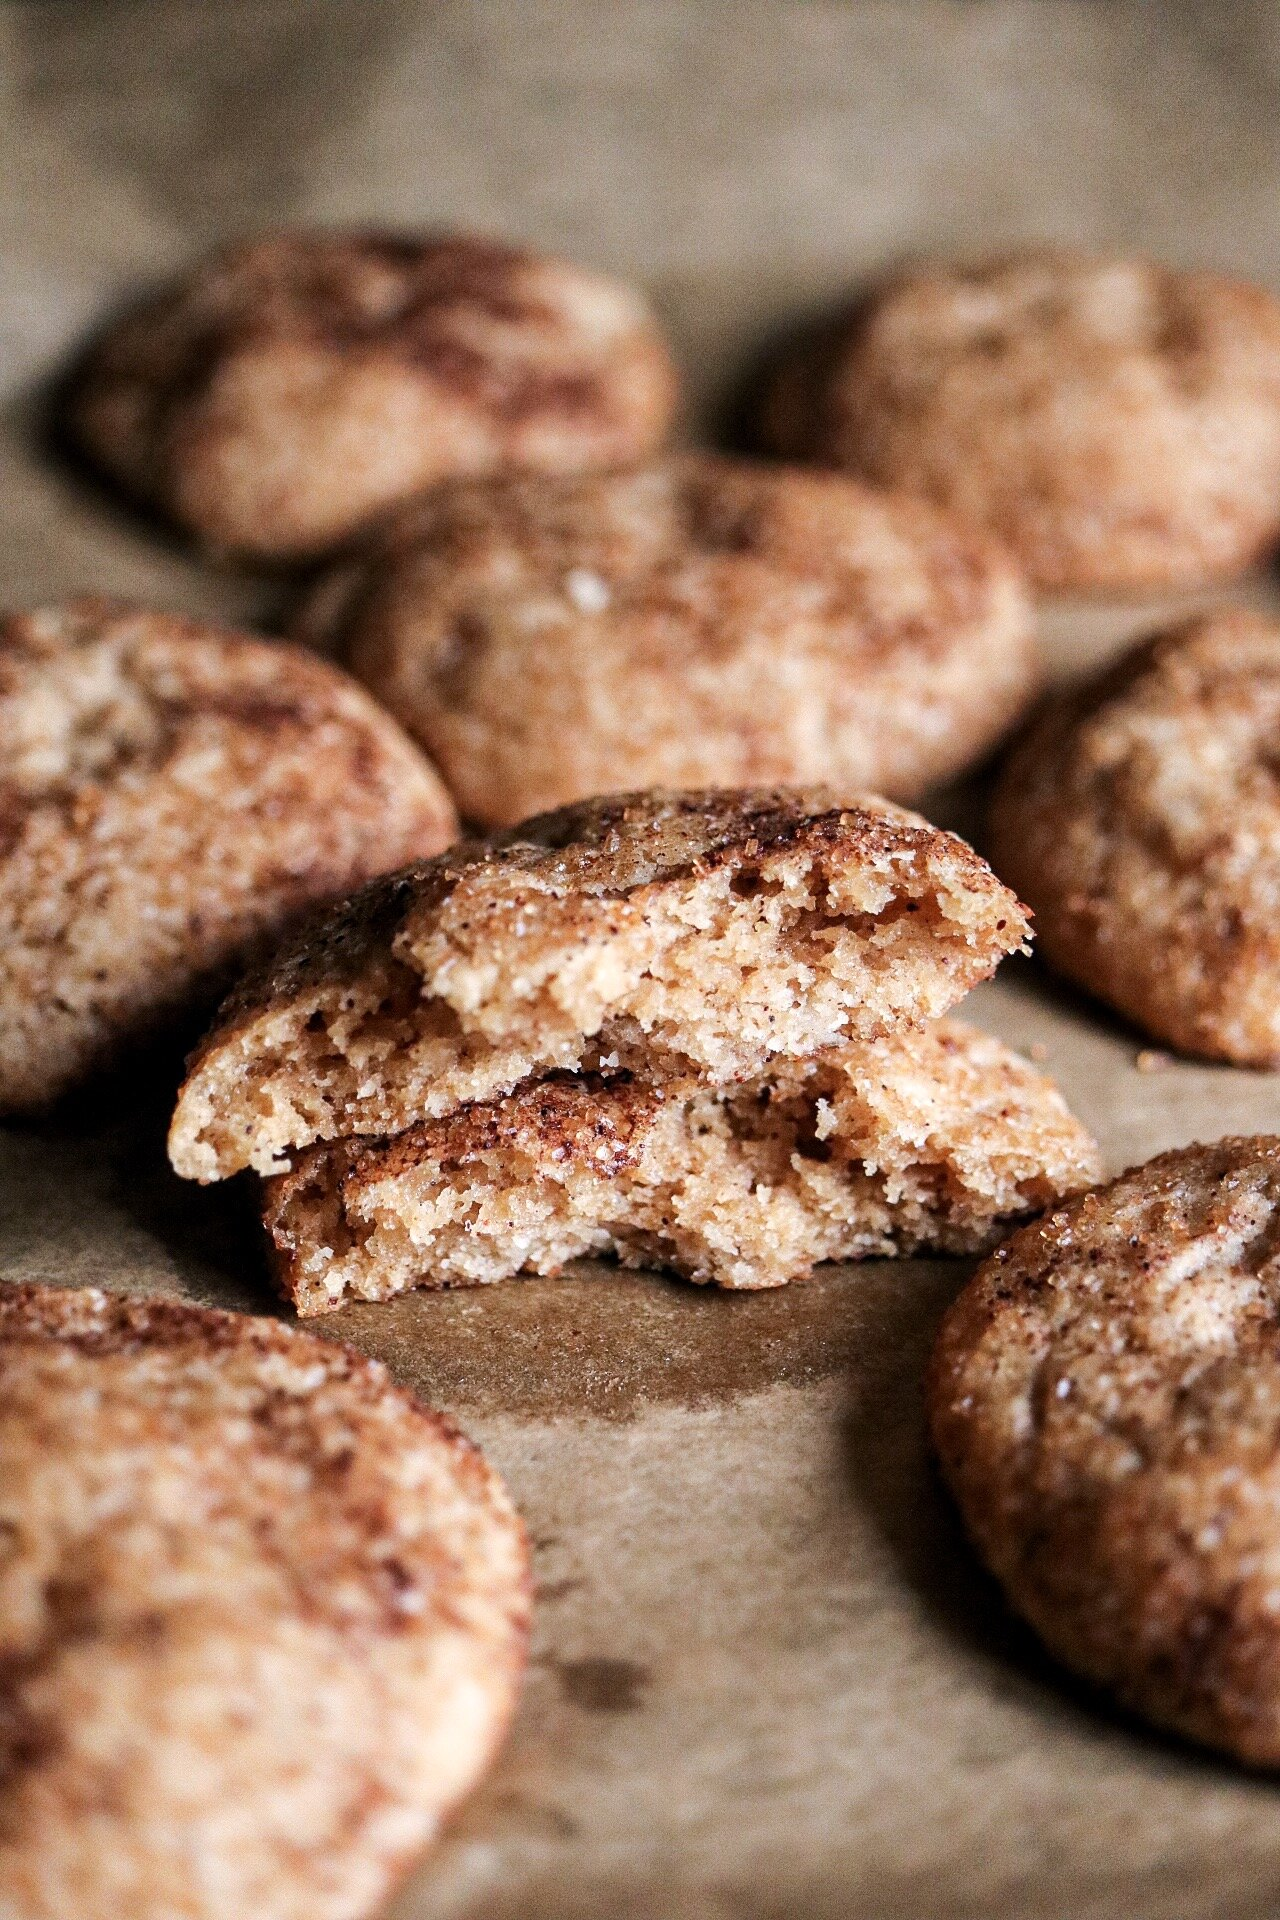 Snickerdoodle Cookies - INGREDIENTS:1 1/4 cup all purpose or spelt flour1/2 tsp baking powder1/4 tsp baking soda1/2 tsp salt1/2 tsp cinnamon 1/4 tsp nutmeg1/3 cup melted coconut oil2/3 cup brown sugar1/4 cup warm waterINSTRUCTIONS:Preheat your oven to 350F. Line a baking sheet with parchment paper and set aside. In a medium bowl, whisk together the flour, salt, baking soda, baking powder, cinnamon, and nutmeg. In another bowl, mix together the sugar, oil, and water. Combine the wet mixture to the dry. once your cookie batter is done, combine in a small bowl 1/4 cup sugar + 1 Tbsp cinnamon. Take 1 tablespoon of cookie batter, roll it in your palm, and roll it in the cinnamon-sugar mixture before placing onto your baking sheet. Do that with every cookie, and bake for about 13-15 minutes, depending on how crispy your like the edges, and allow them to cool before munching.